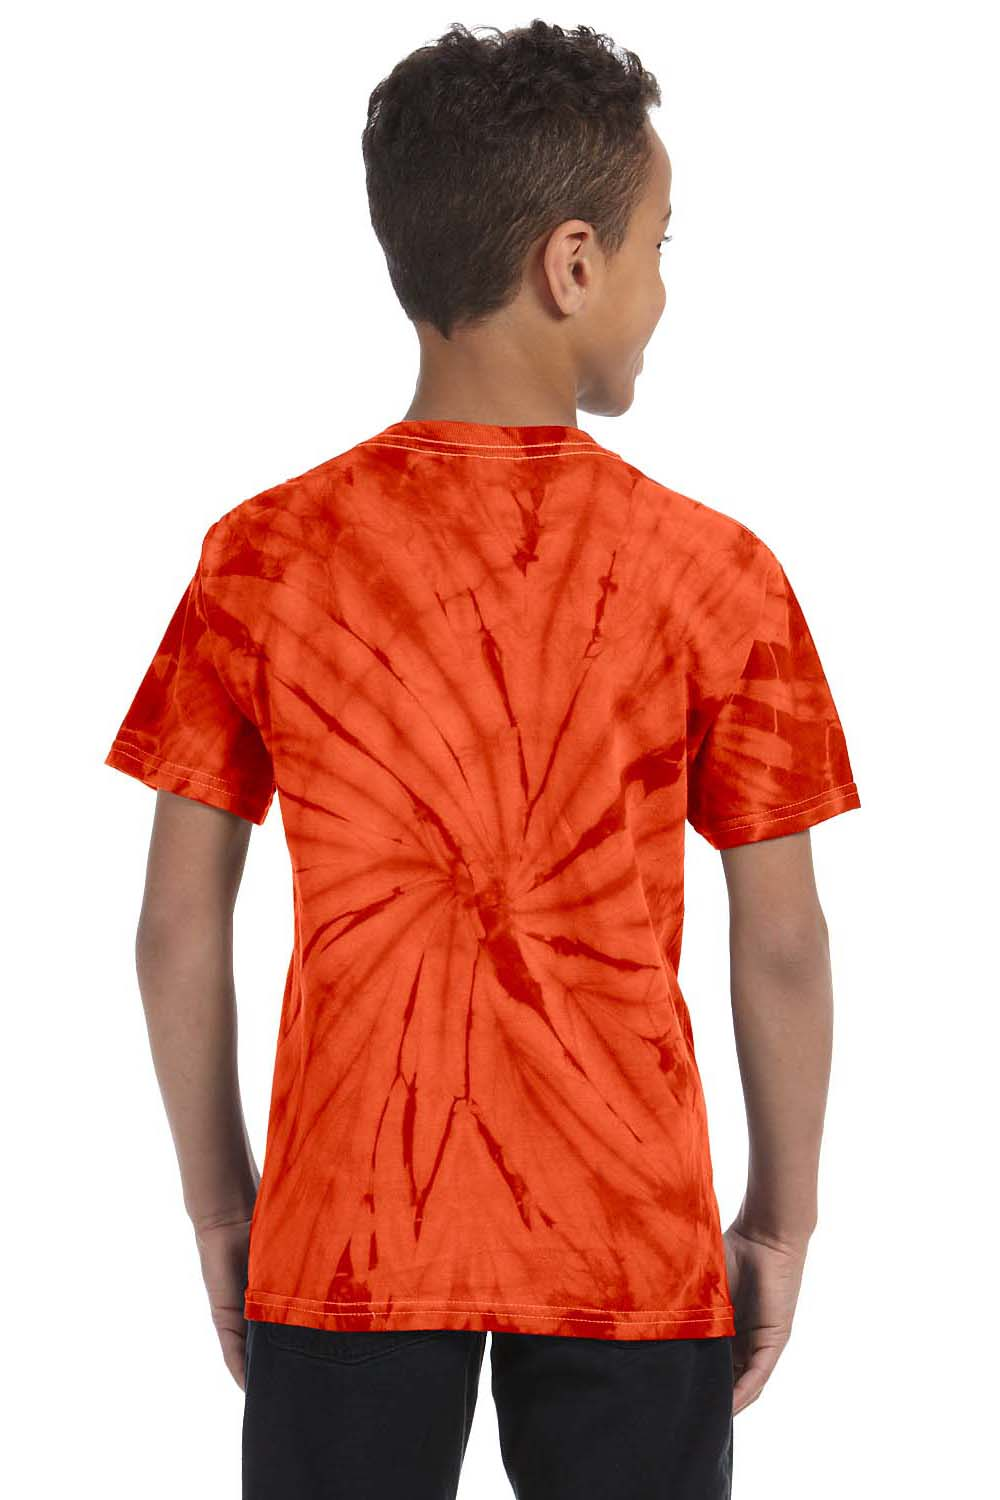 Tie-Dye CD101Y Youth Short Sleeve Crewneck T-Shirt Orange Back